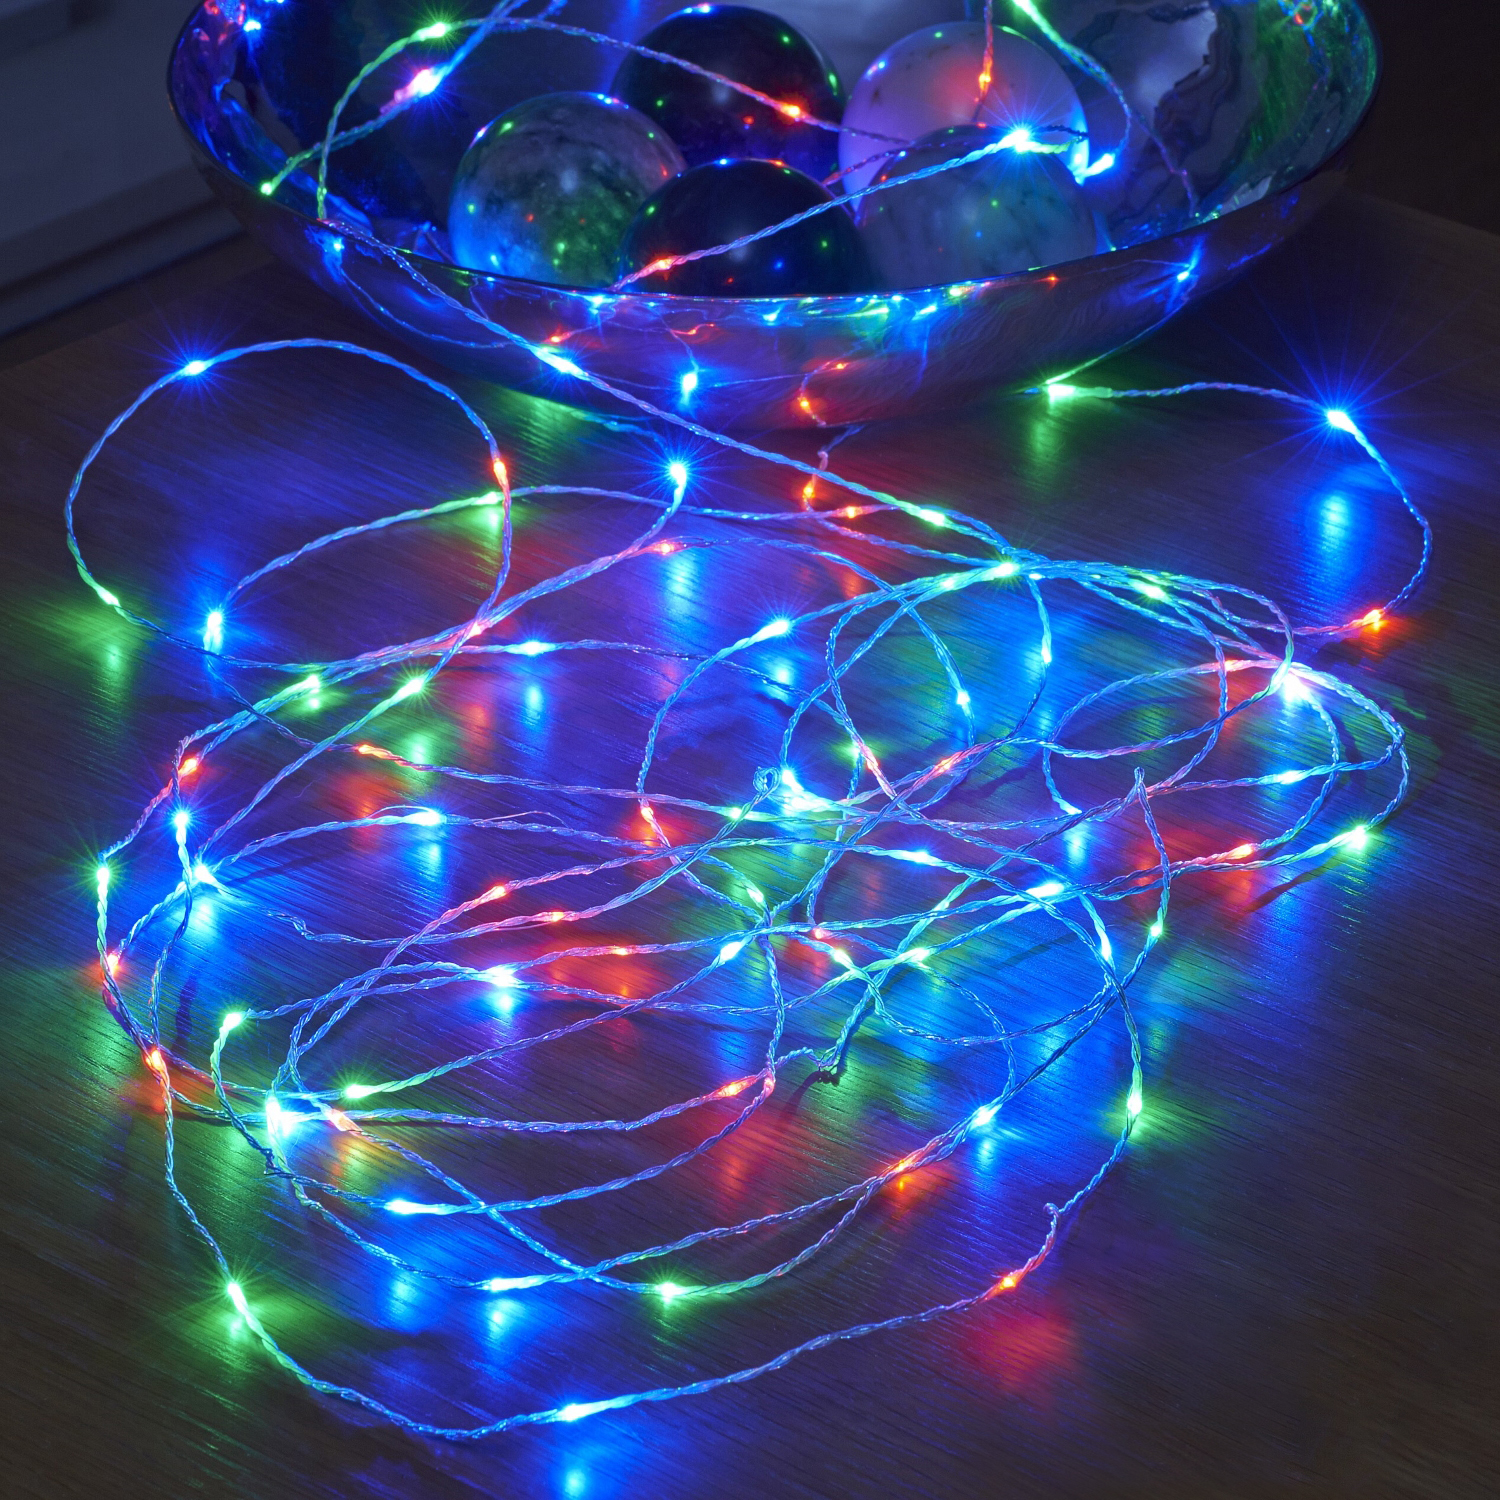 String Lights Backyard Led : Micro LED String Lights - Battery Operated - Remote Controlled - Outdoor - RGB - 5M - Auraglow ...